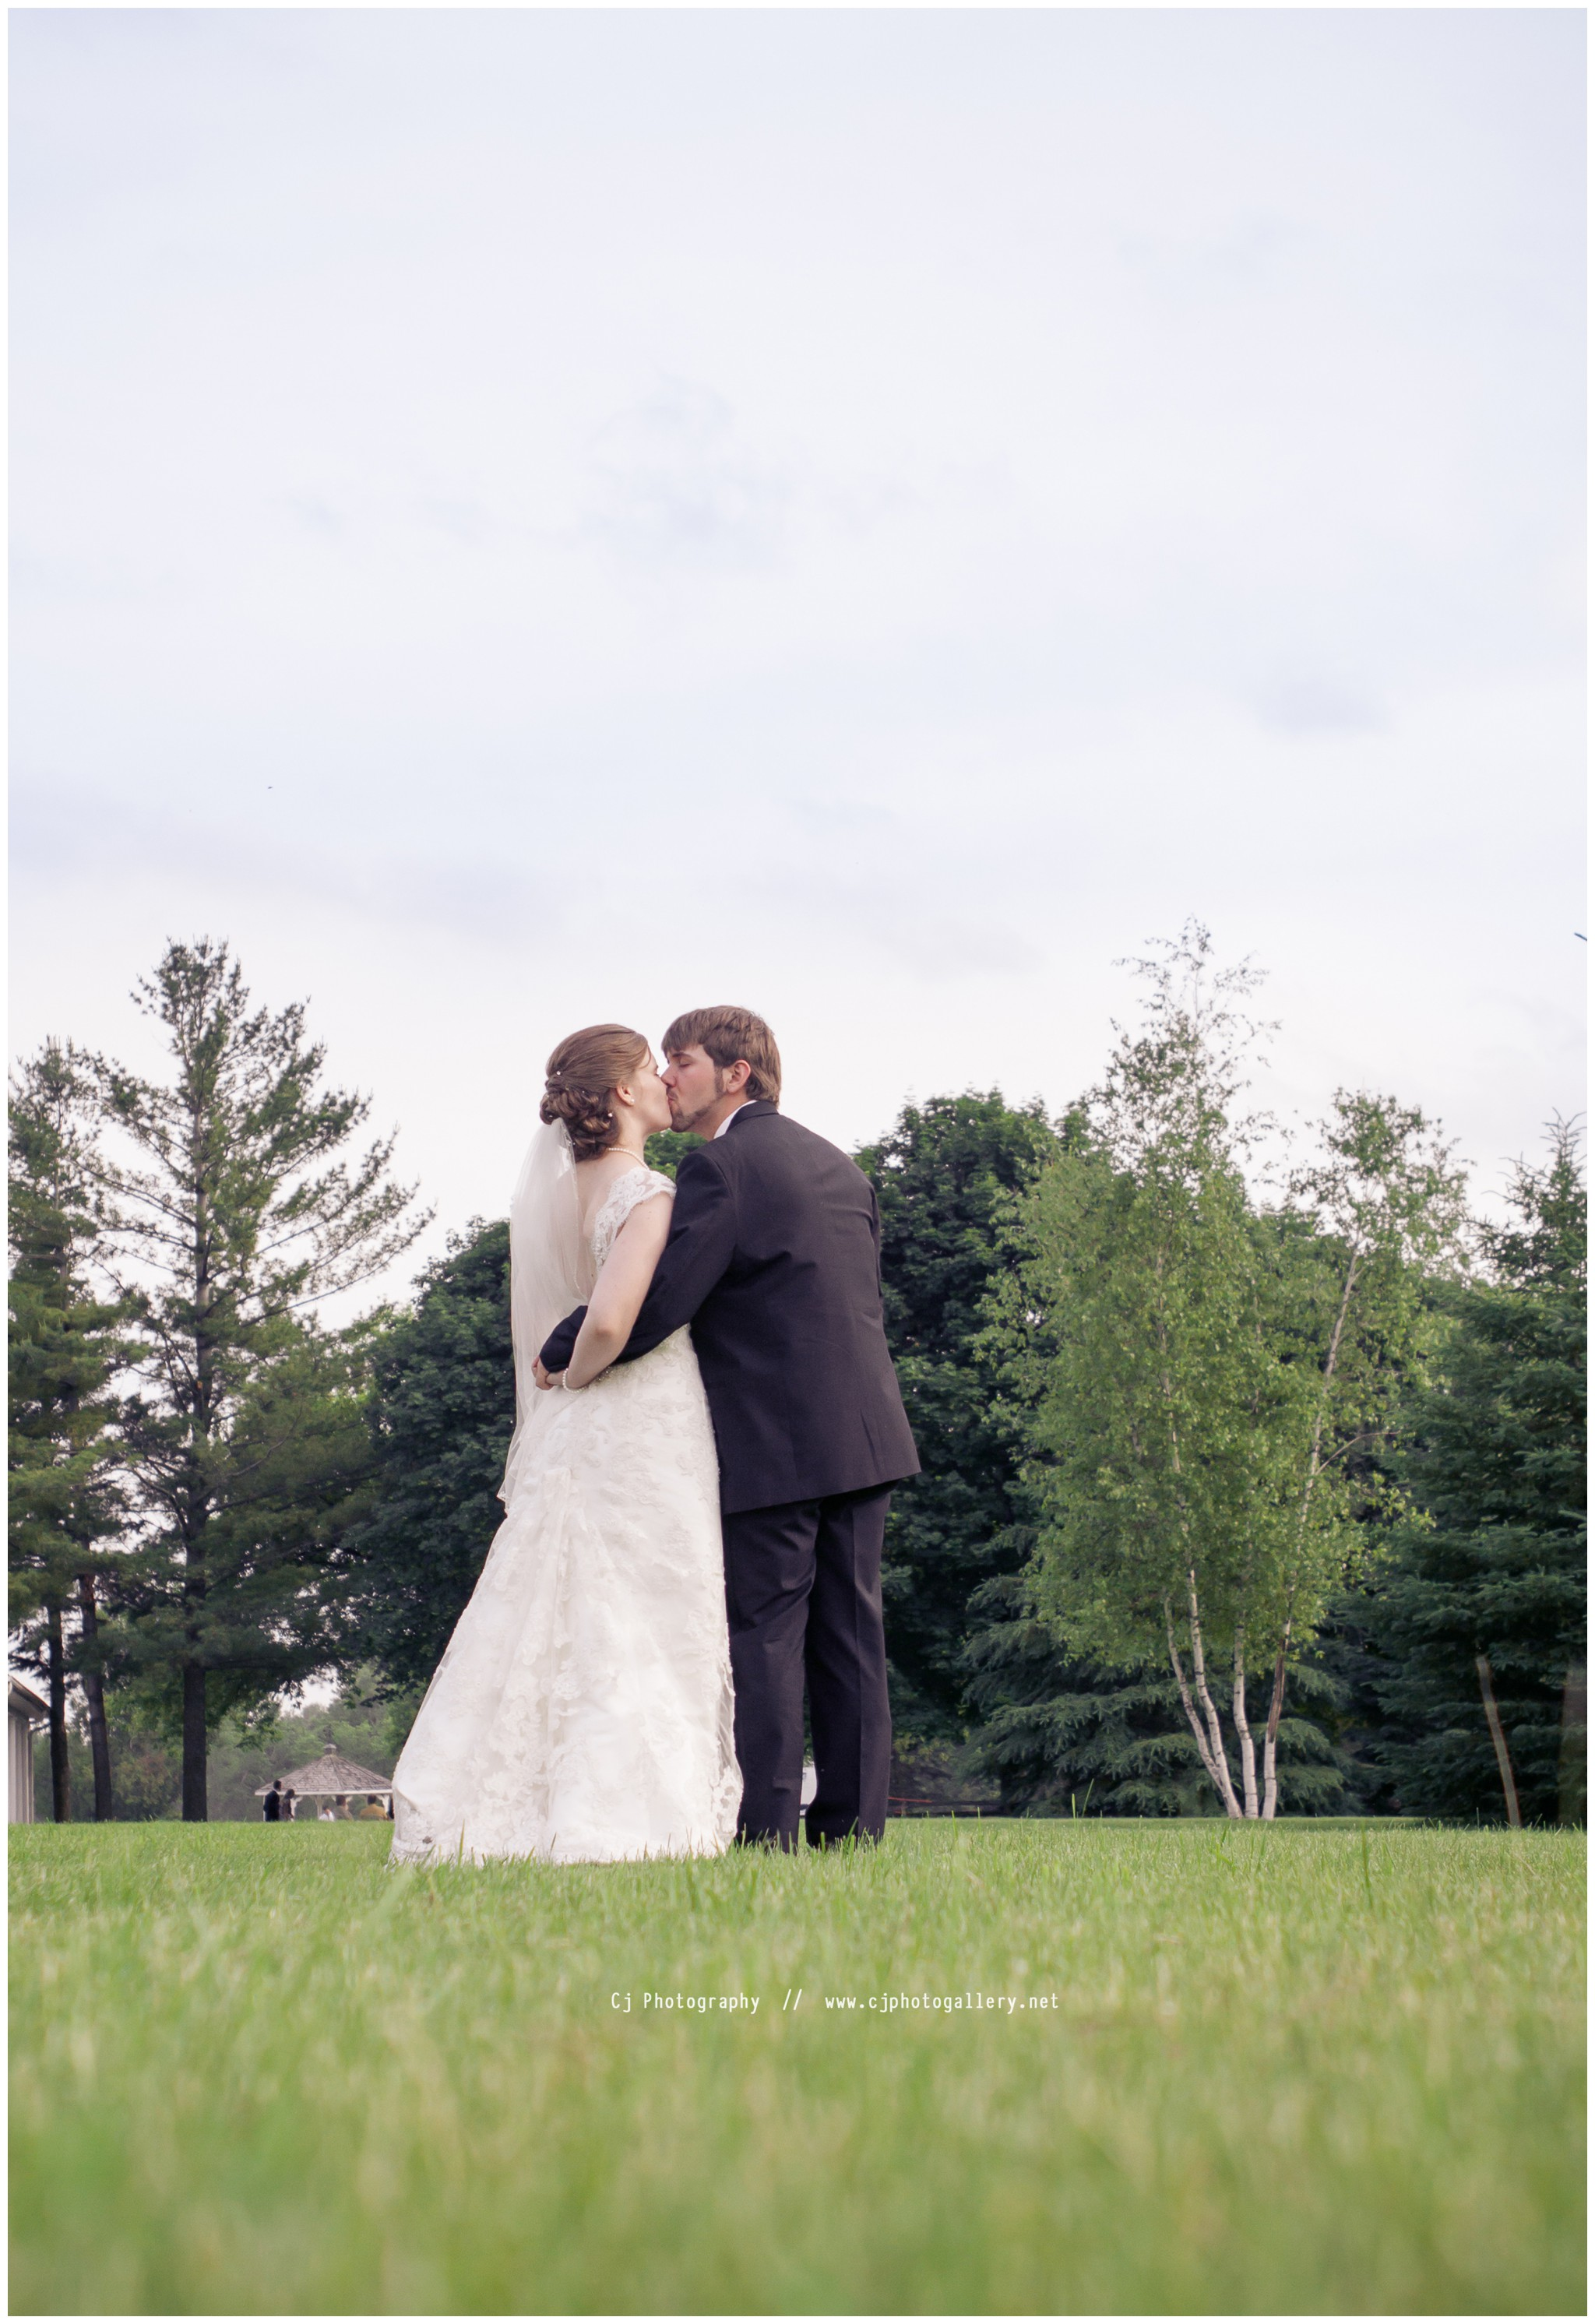 Appleton Wisconsin Wedding Photography - Cj Photography